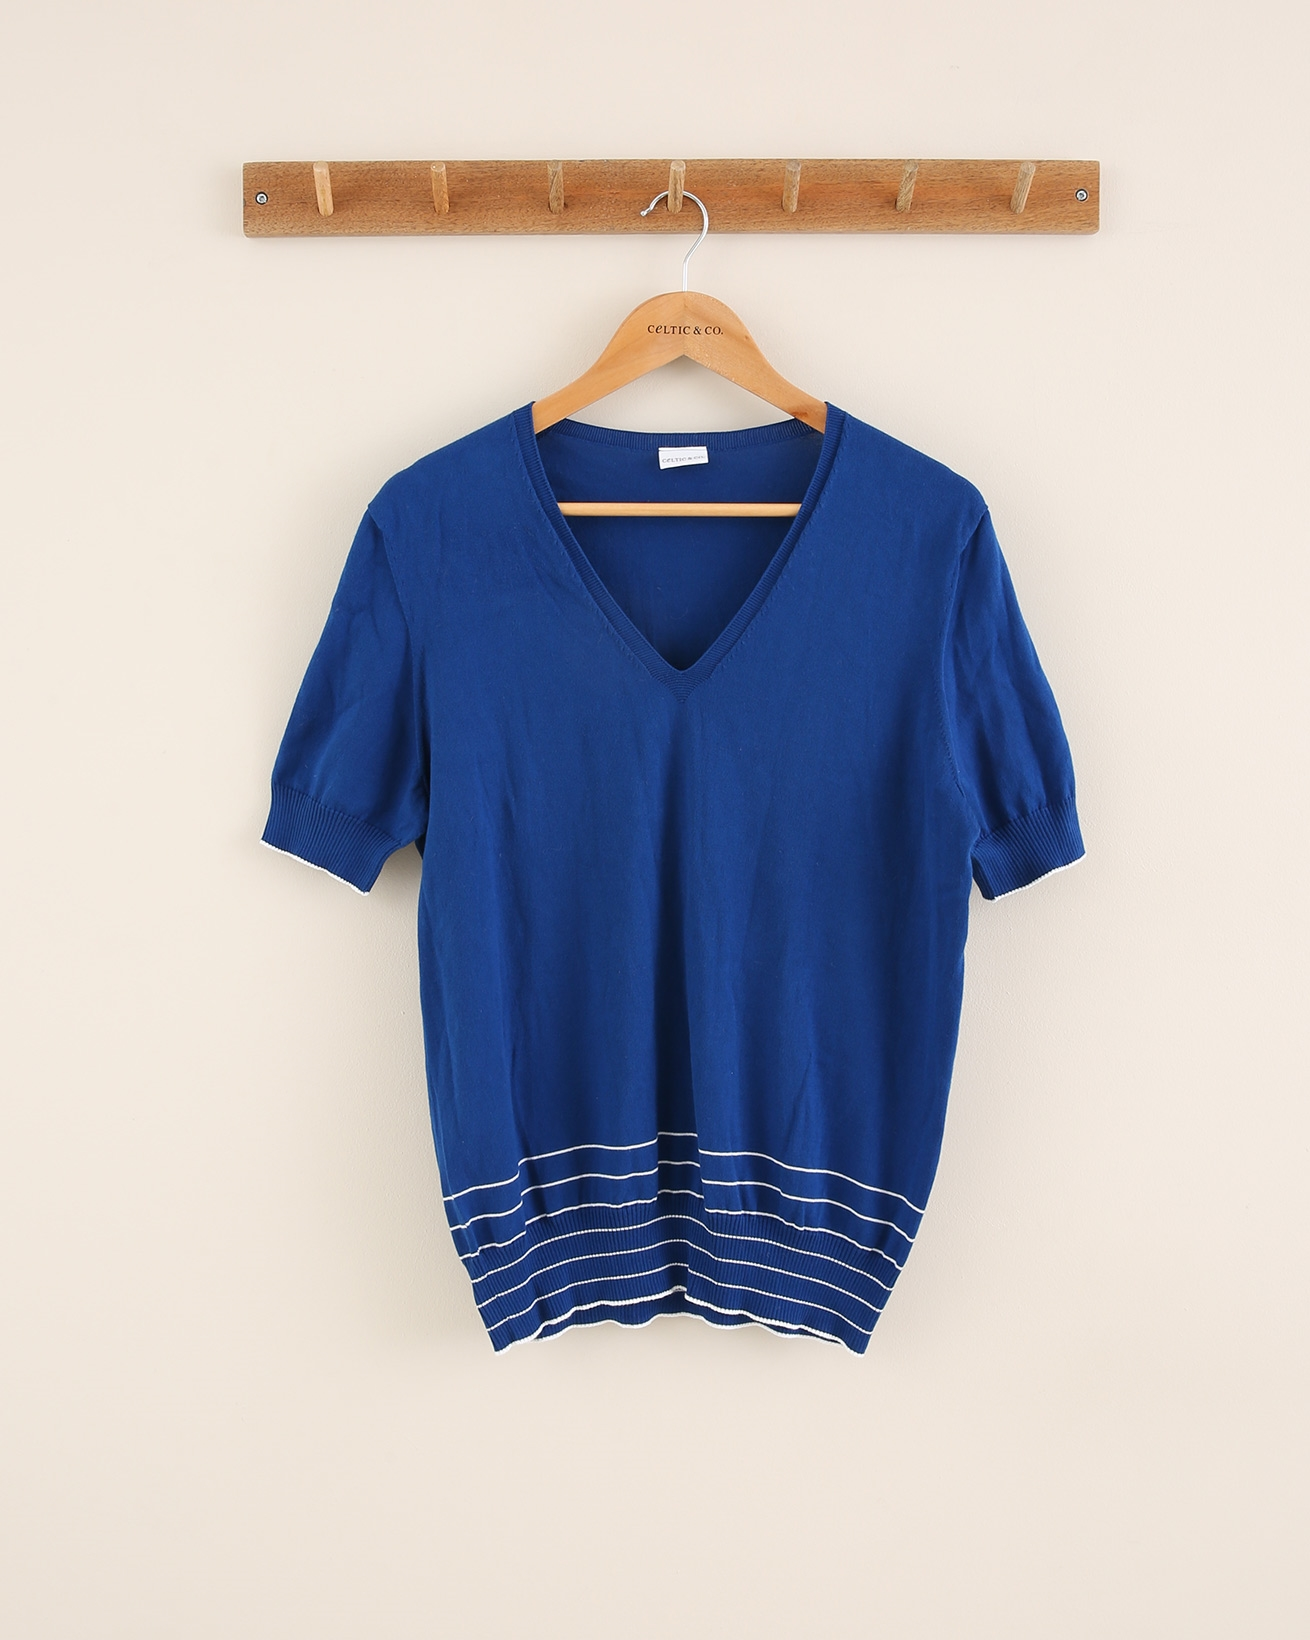 Cotton Short Sleeve Tee - Size Small -  Cobalt/White - 1798